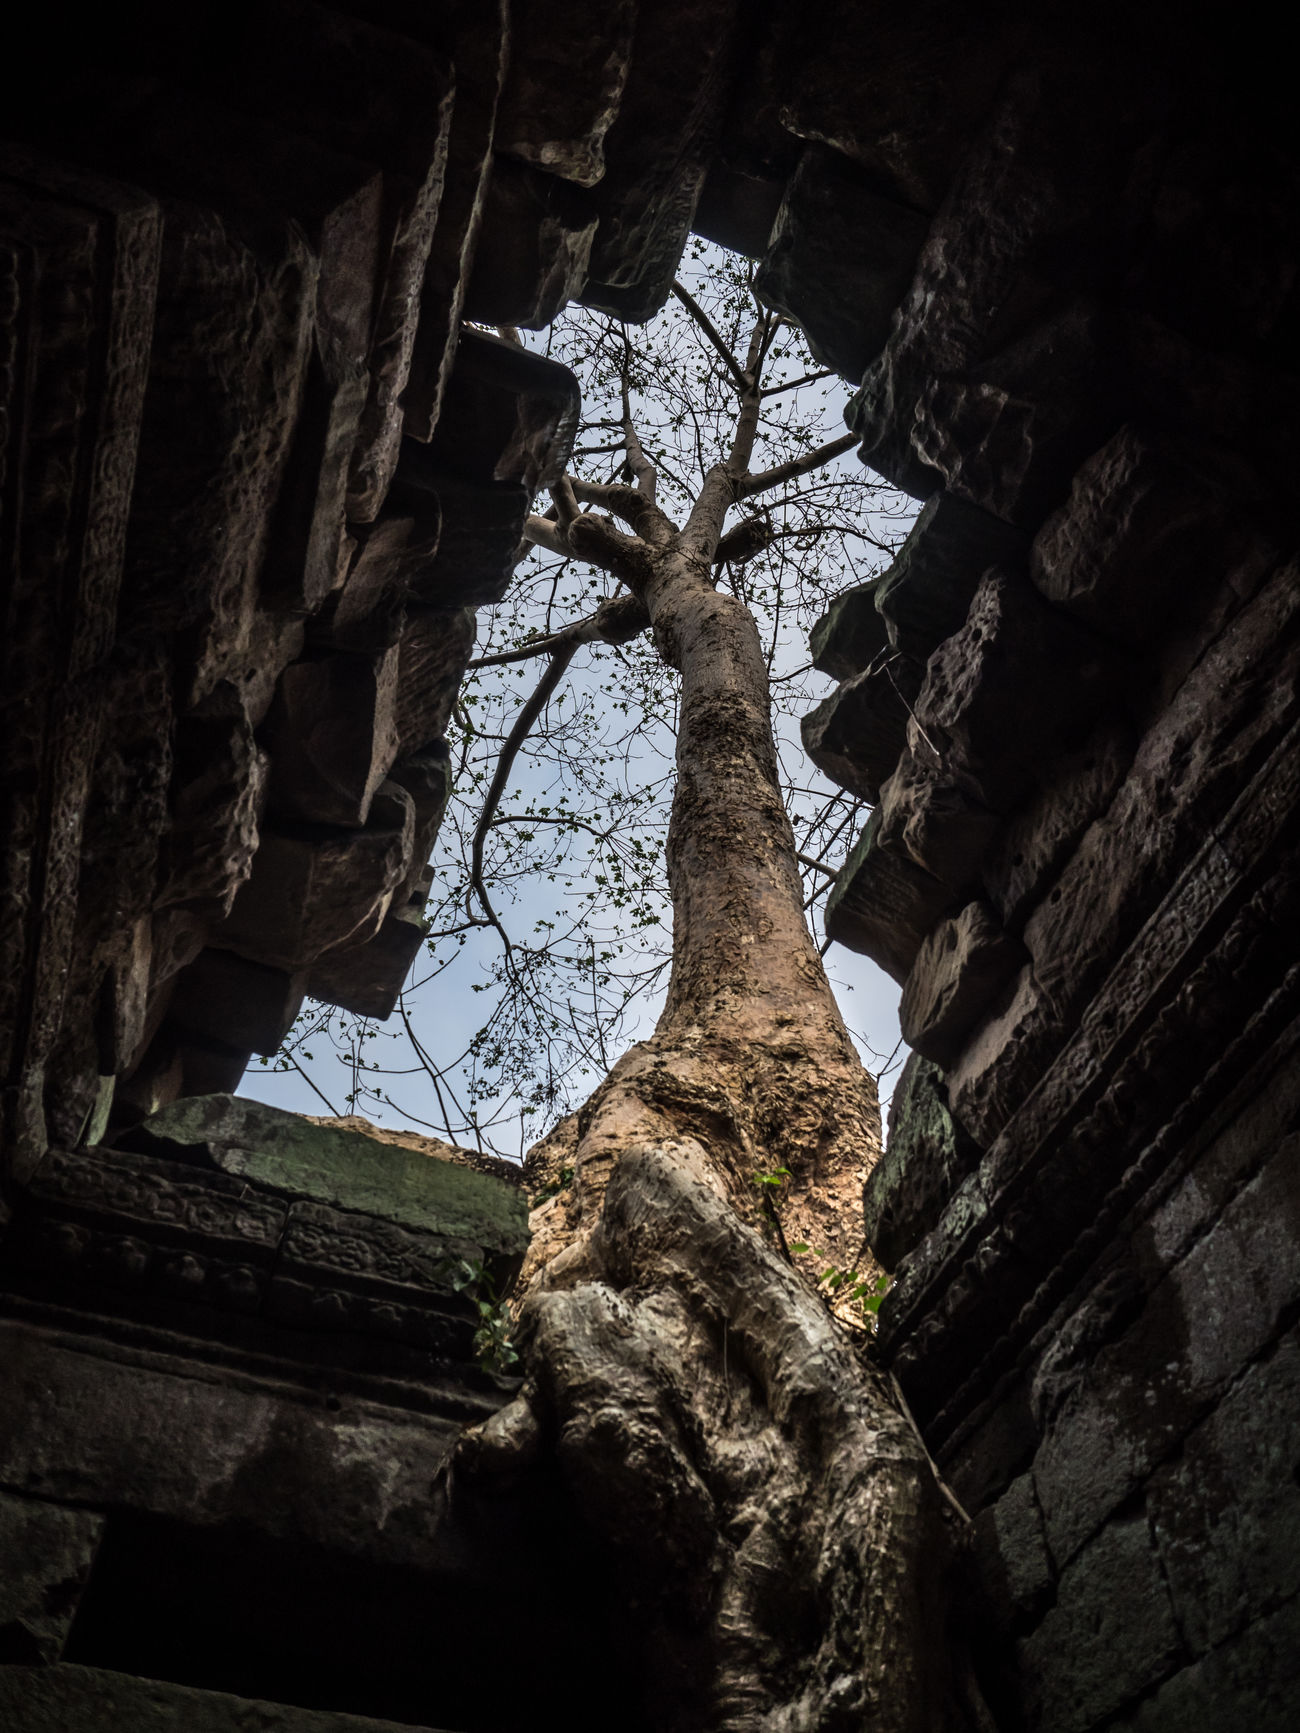 Angkor Angkor Thom Angkor Wat Beauty In Nature Cambodia Day Low Angle View Nature No People Outdoors Sky Strangler Fig Tree